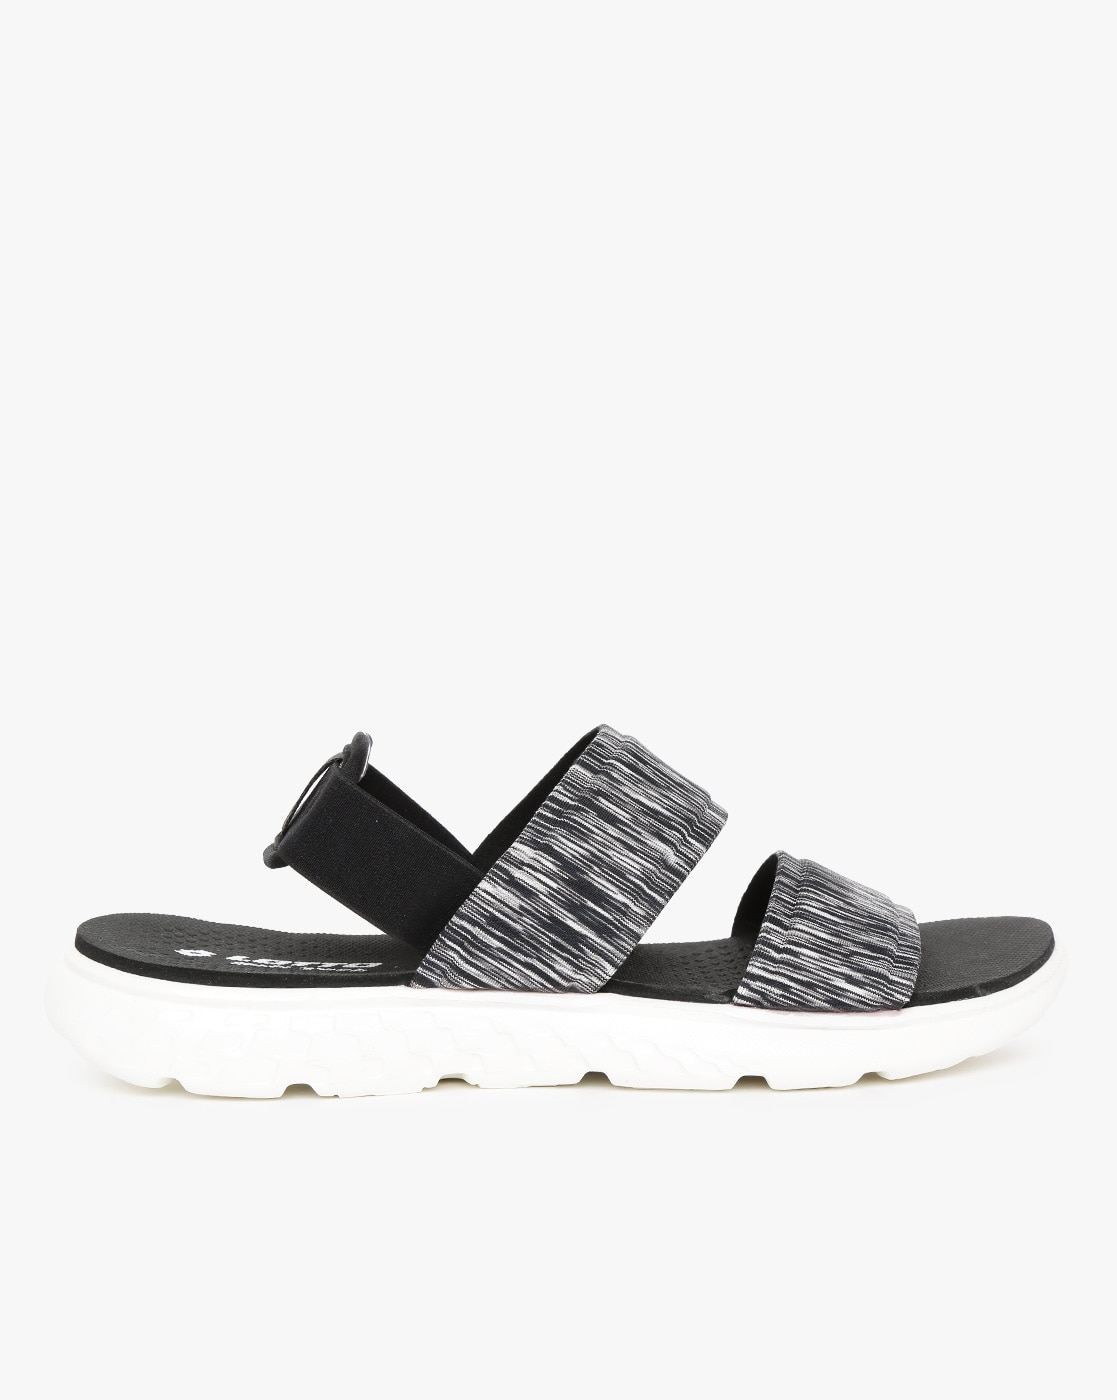 Buy Black Sports Sandals for Women by